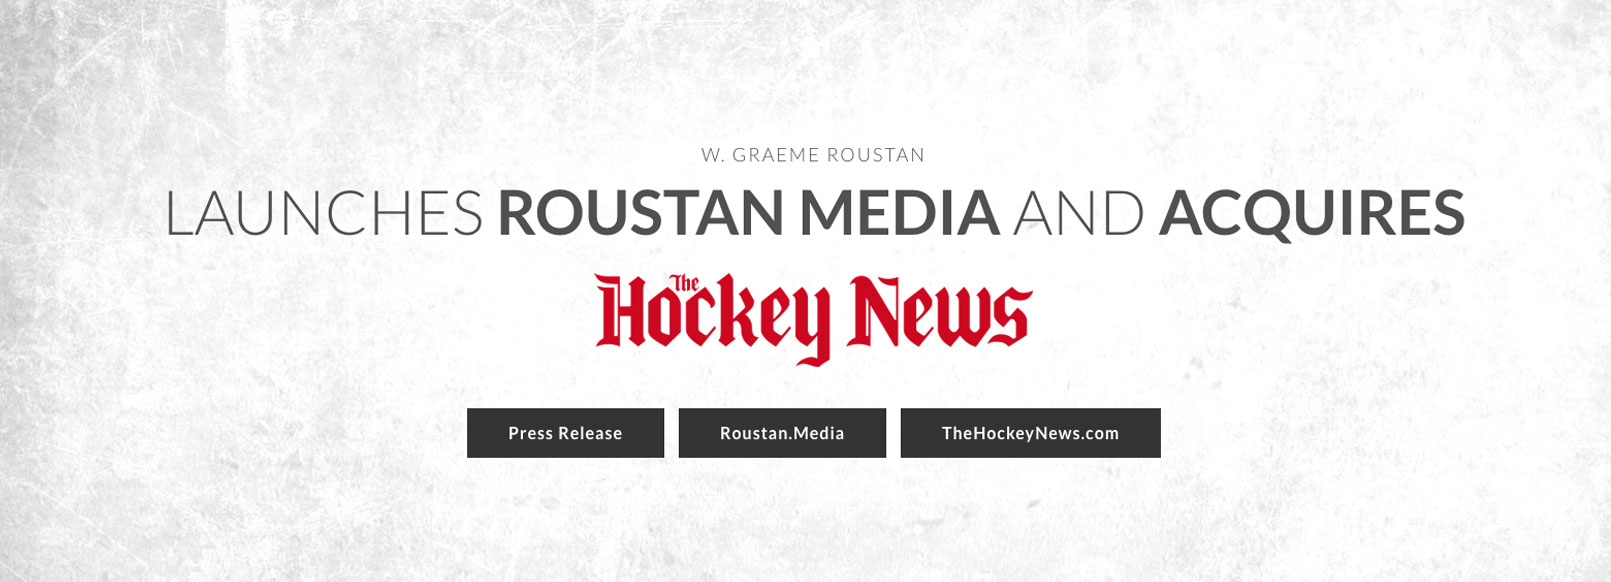 Home Page Sliders Roustan Acquires The Hockey News